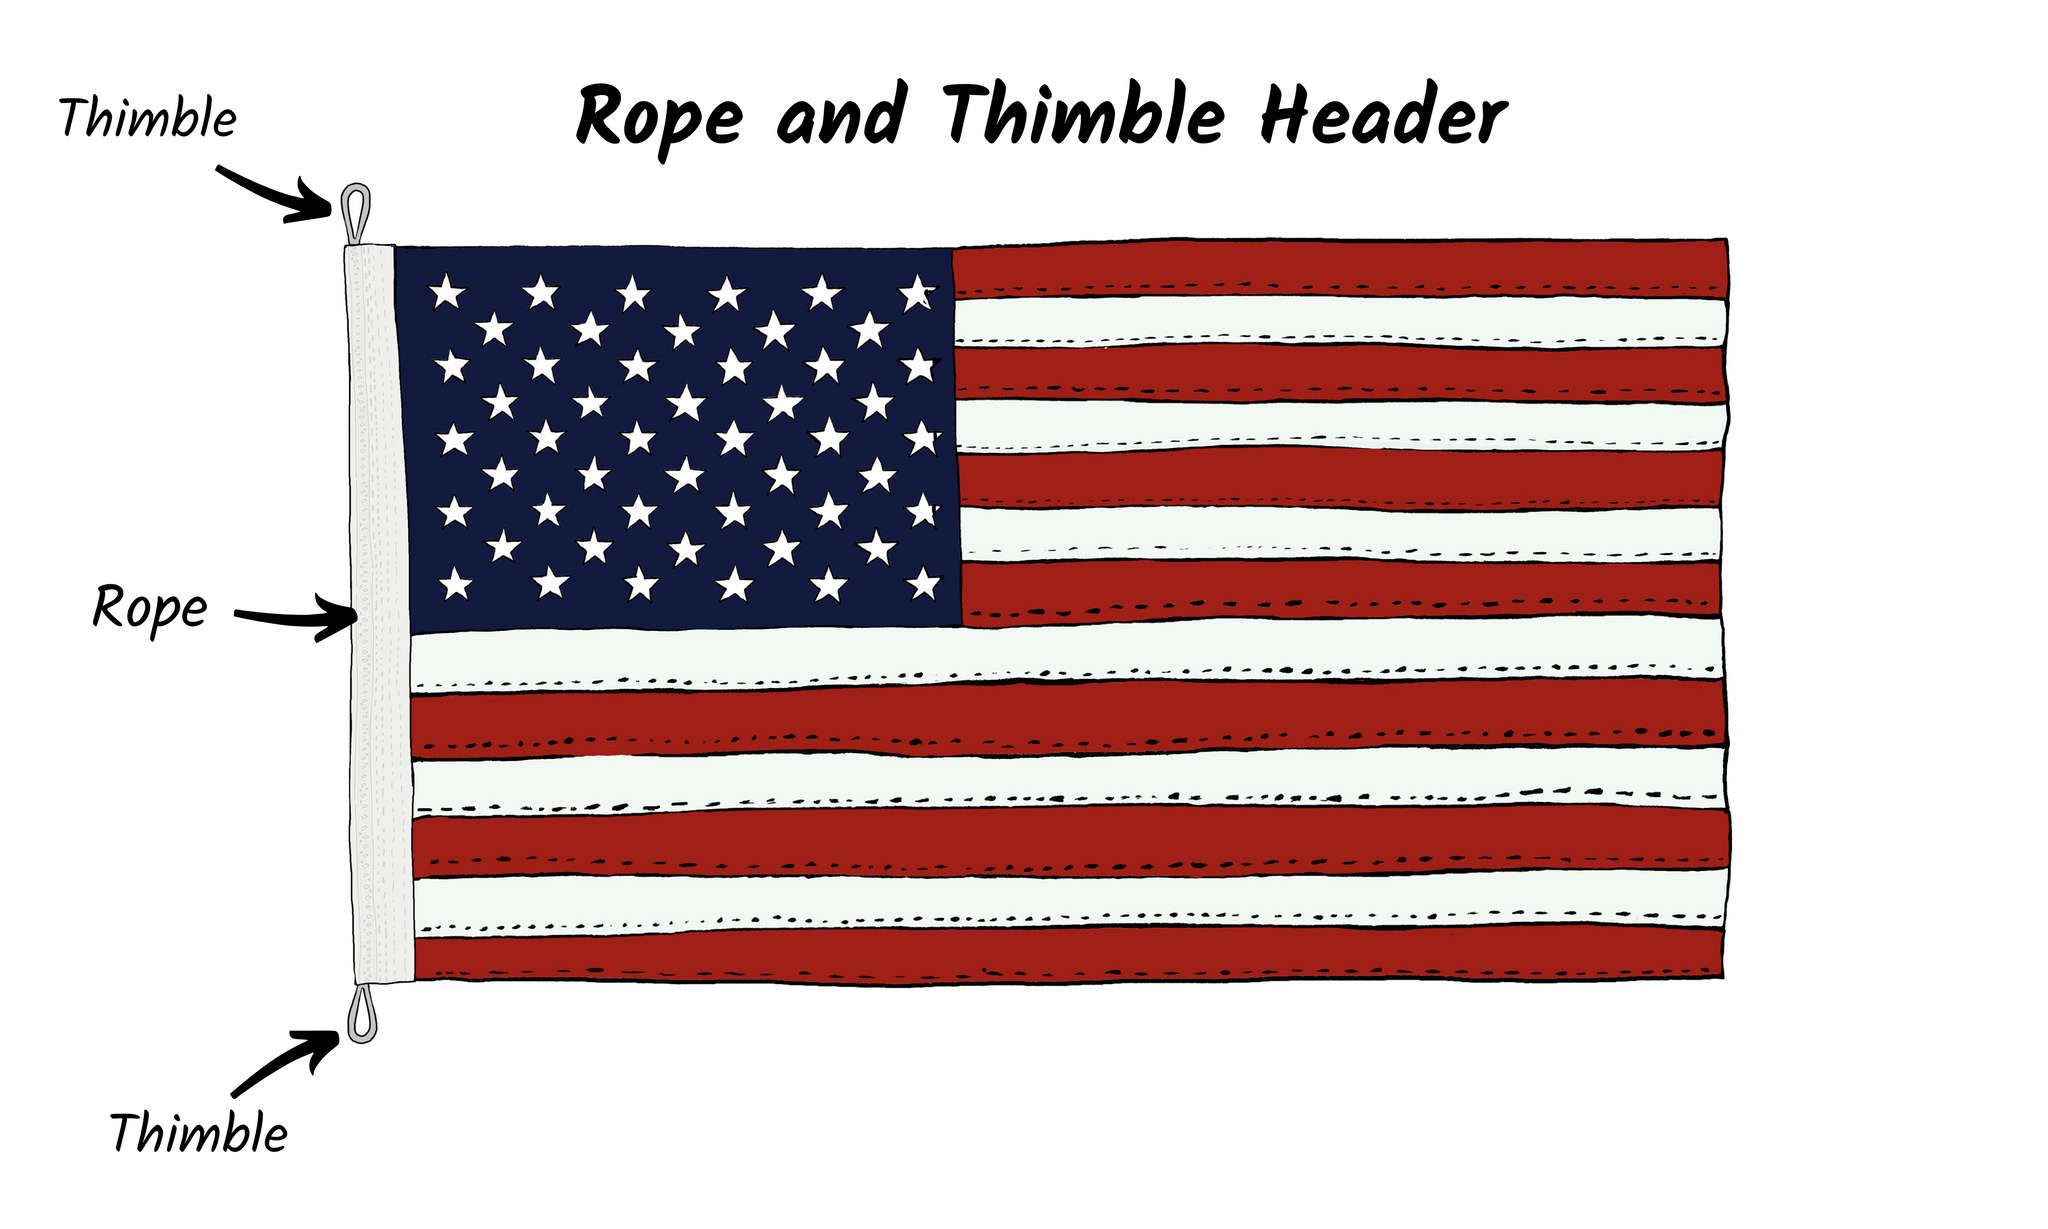 US Flag with rope and thimble header